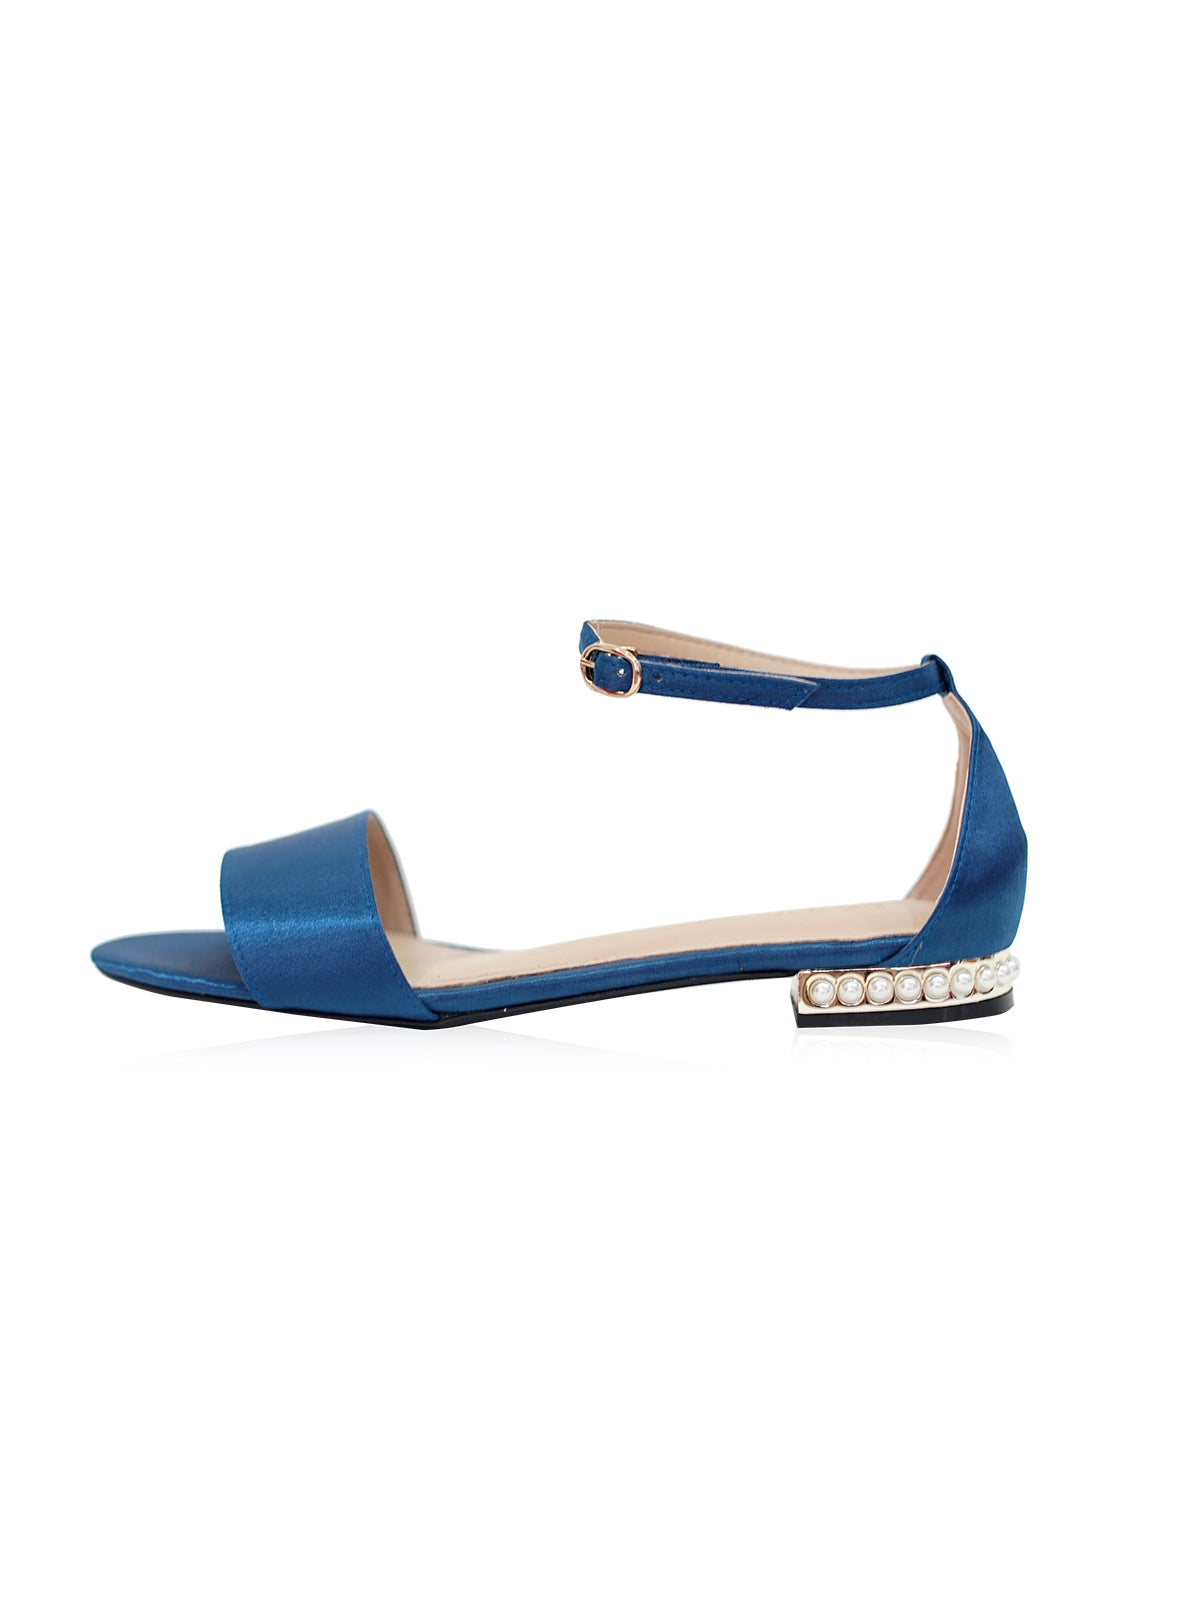 Luna Sandals in Blue